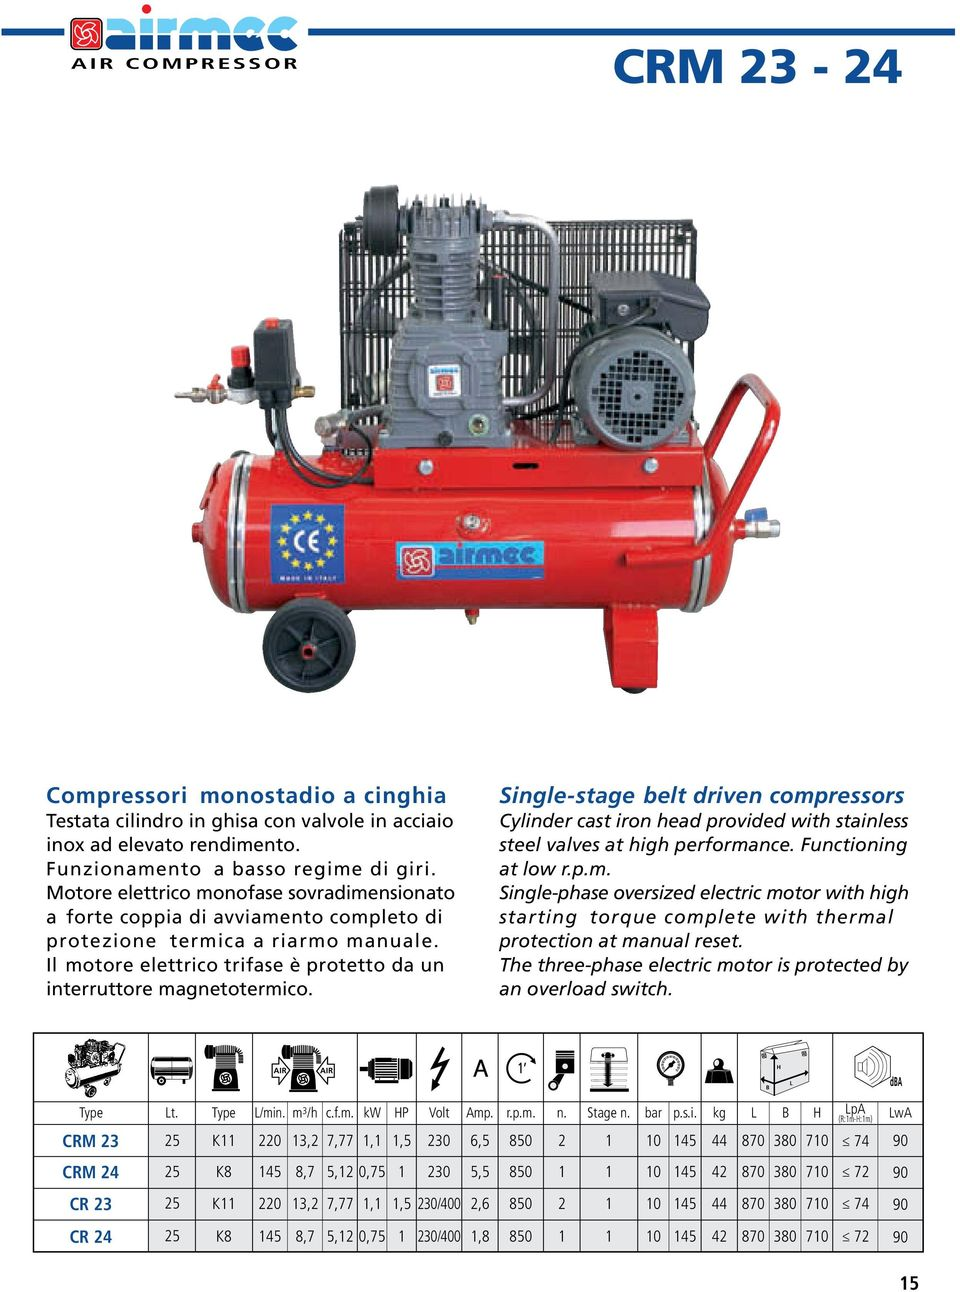 Single-stage belt driven compressors Cylinder cast iron head provided with stainless steel valves at high performance. Functioning at low r.p.m. Single-phase oversized electric motor with high starting torque complete with thermal protection at manual reset.